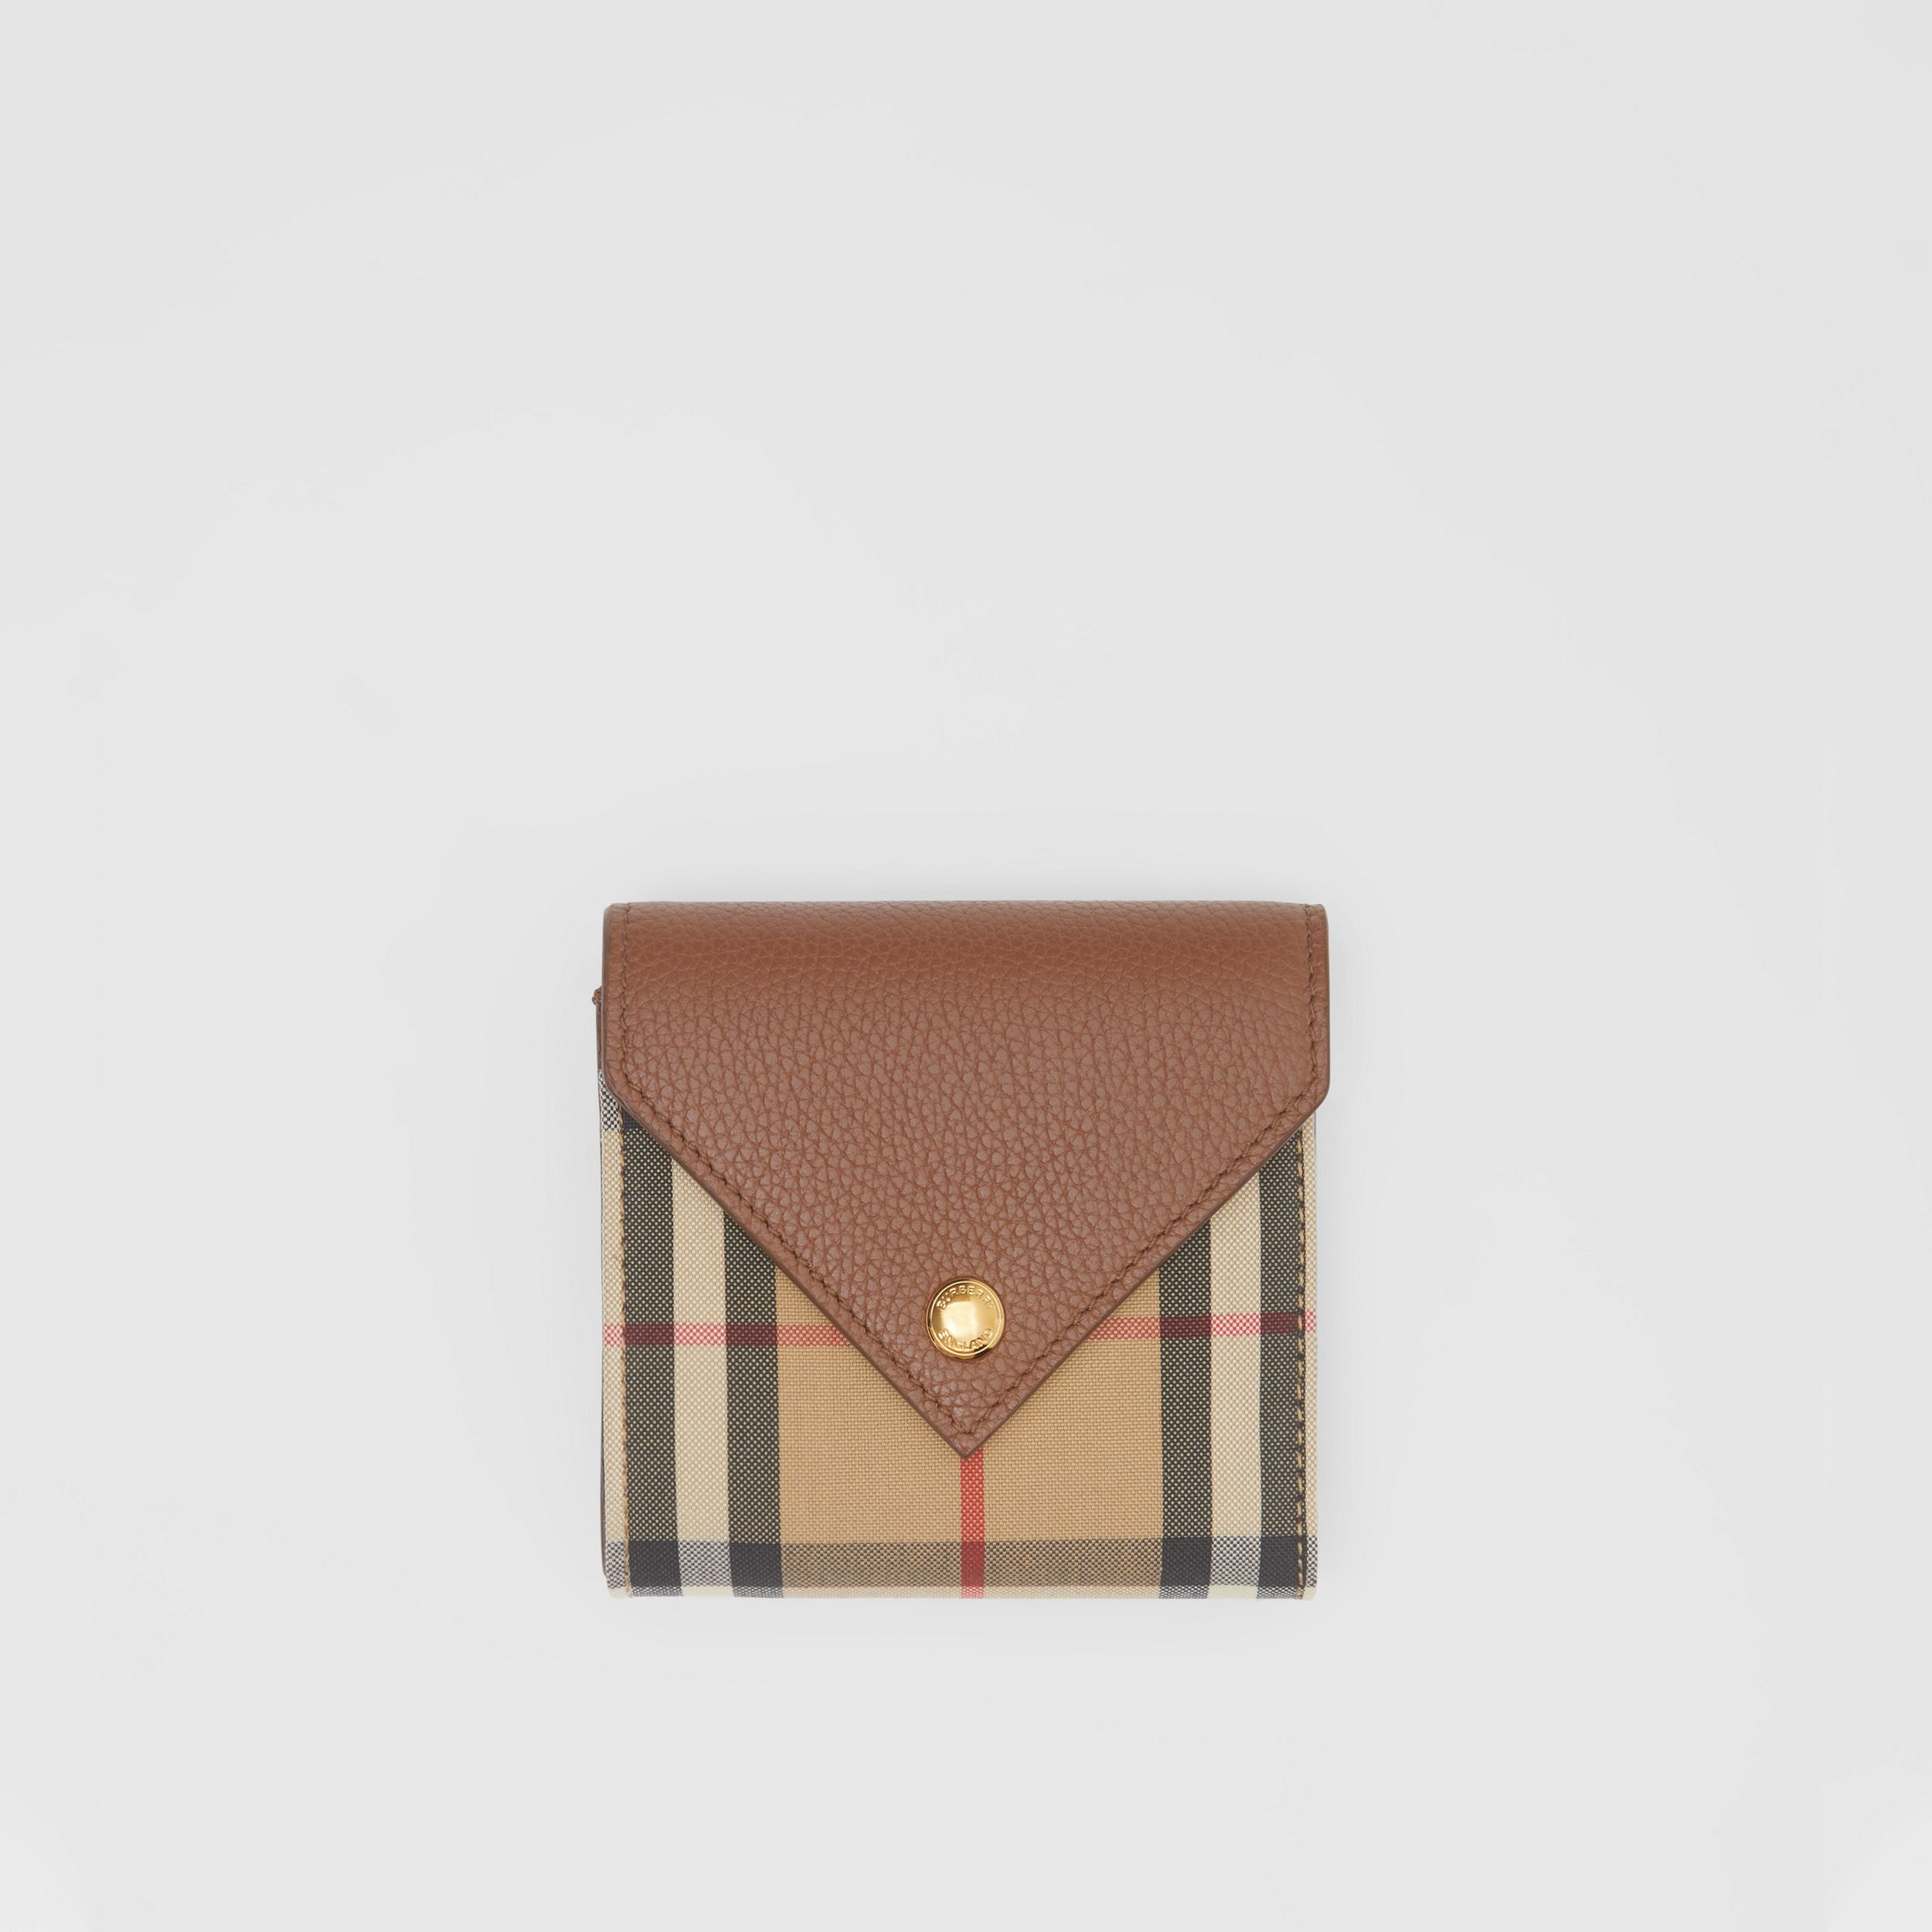 Vintage Check and Grainy Leather Folding Wallet in Tan - Women | Burberry - 1